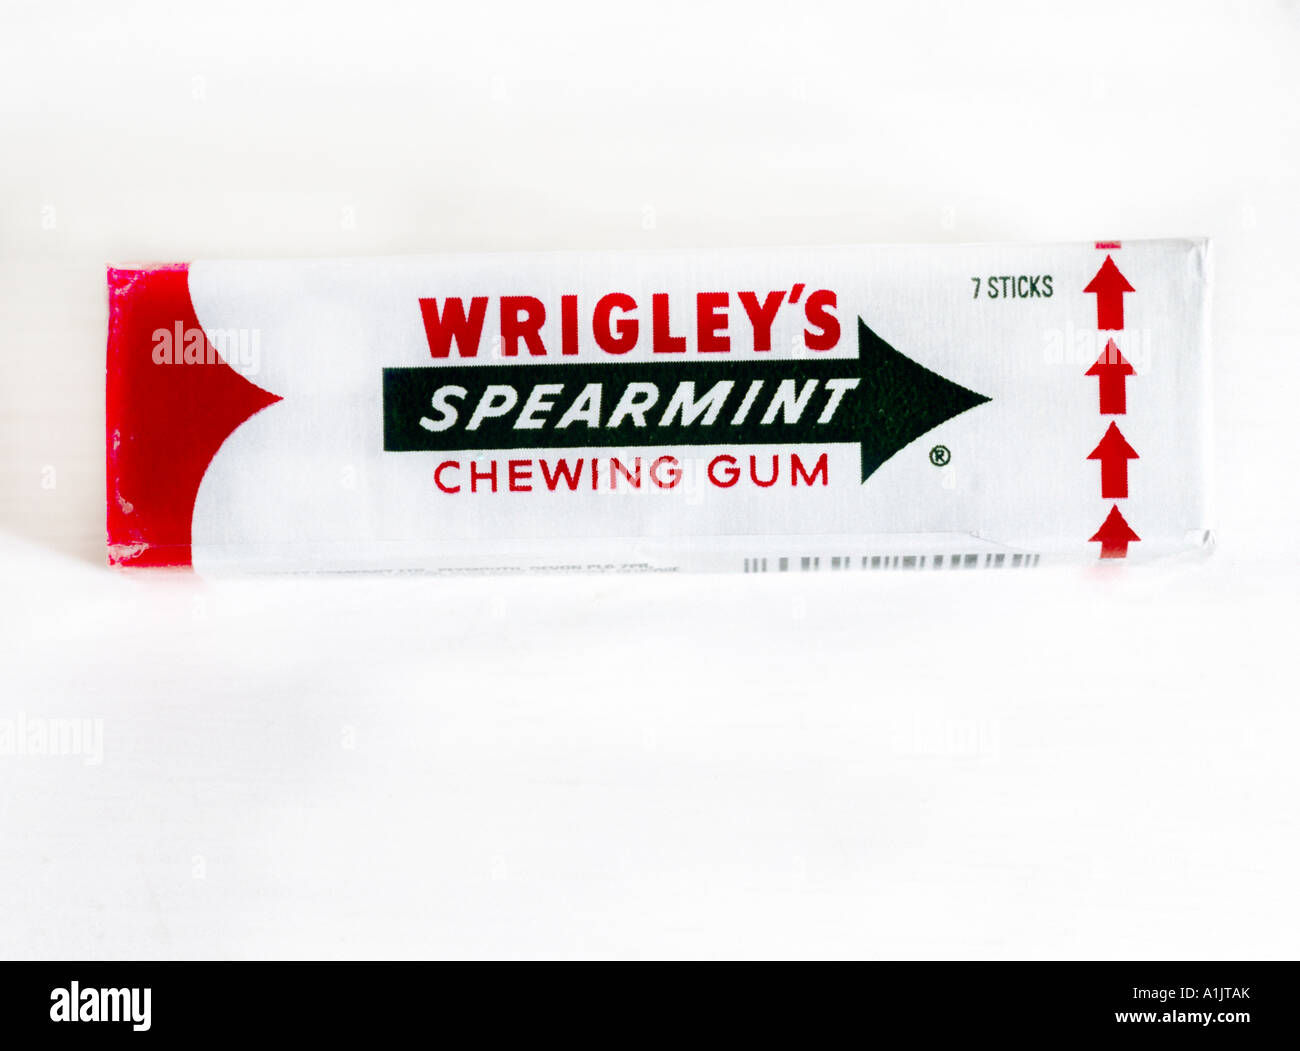 Wrigleys spearmint gum stock photos wrigleys spearmint gum stock packet of chewing gum wrigleys spearmint stock image altavistaventures Gallery